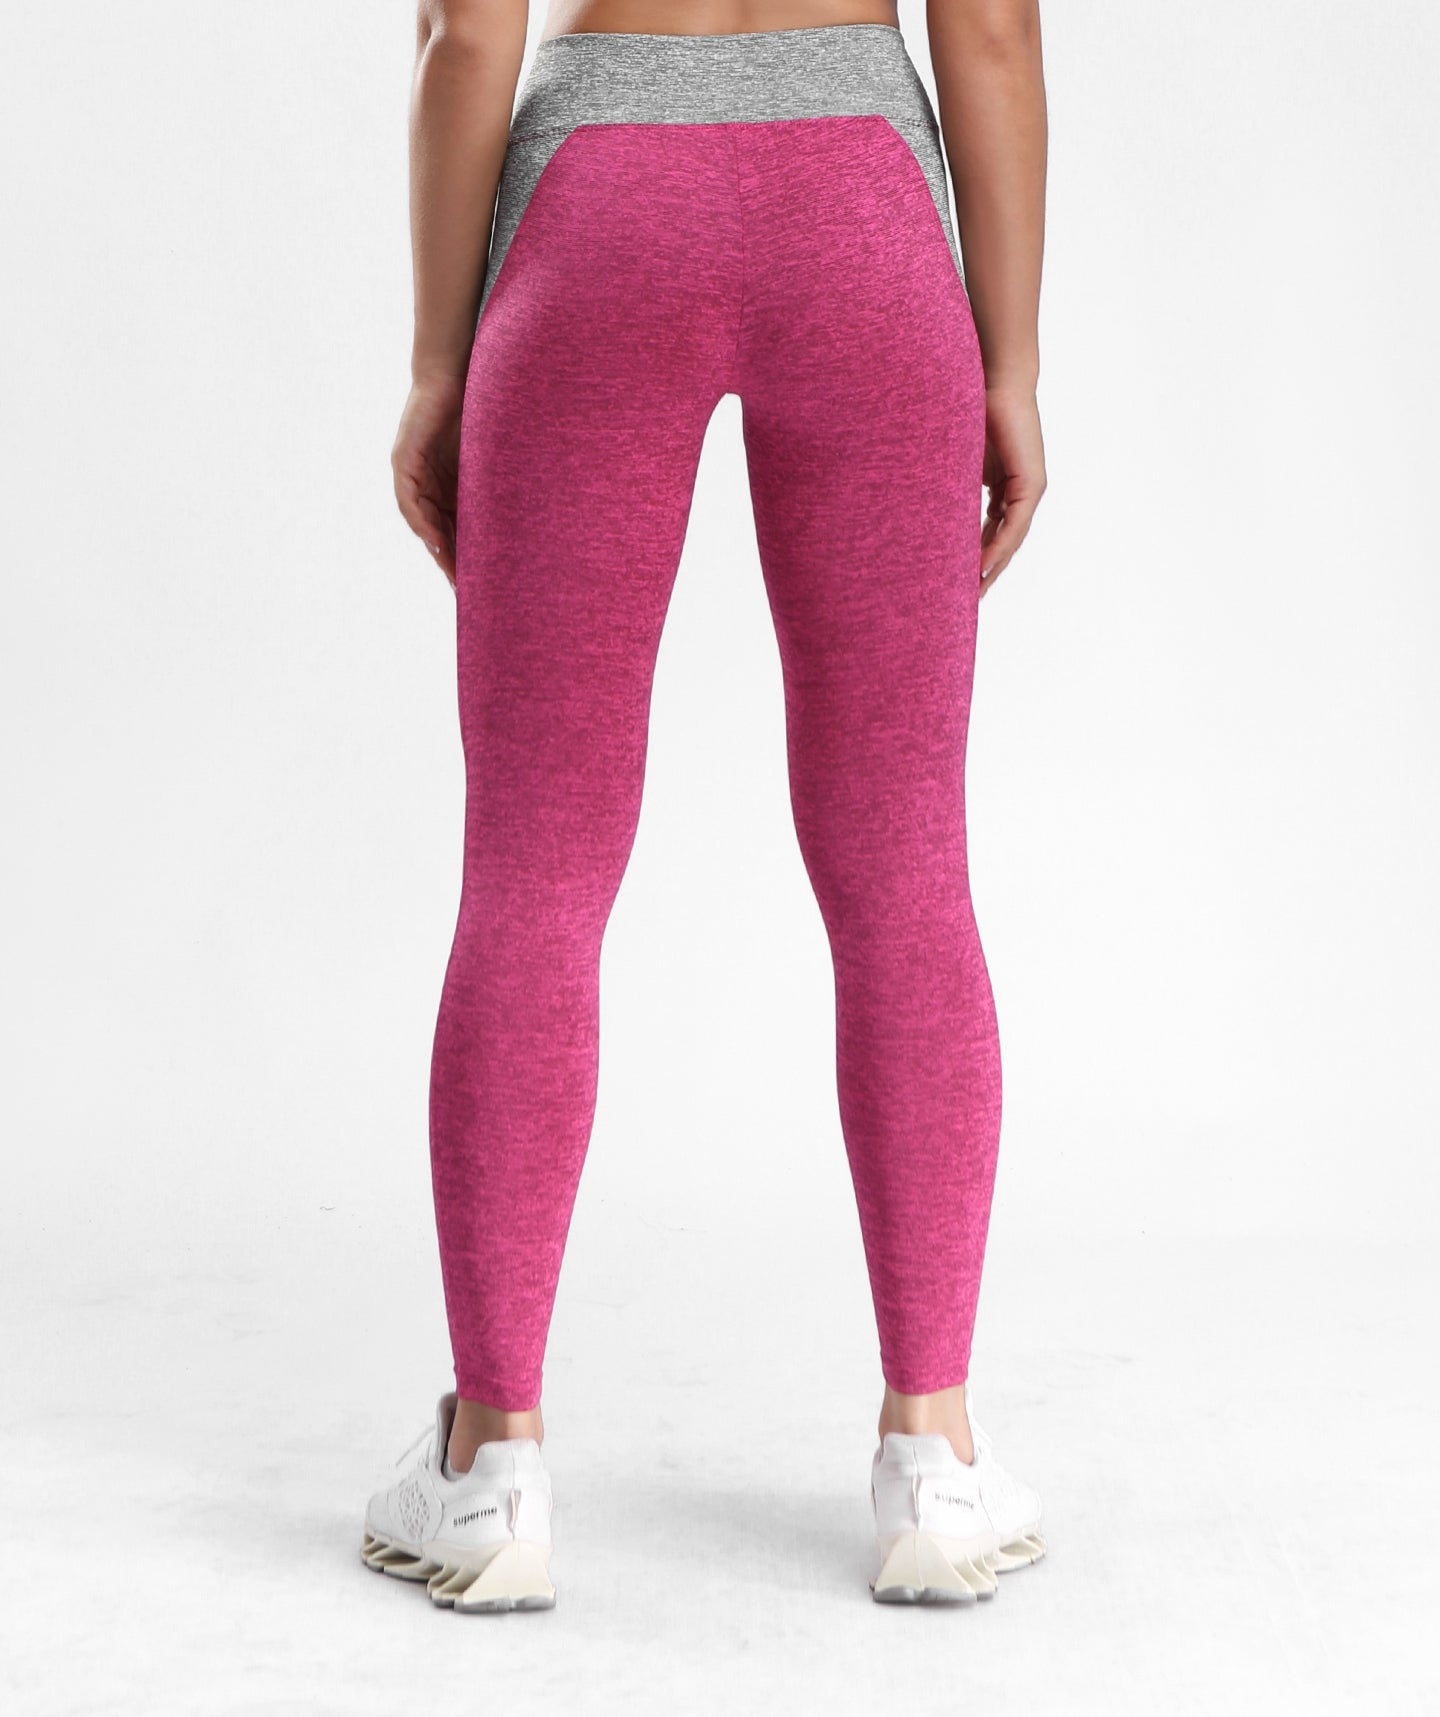 Inside Glamour Side Contrast Sports Leggings - Rose Red